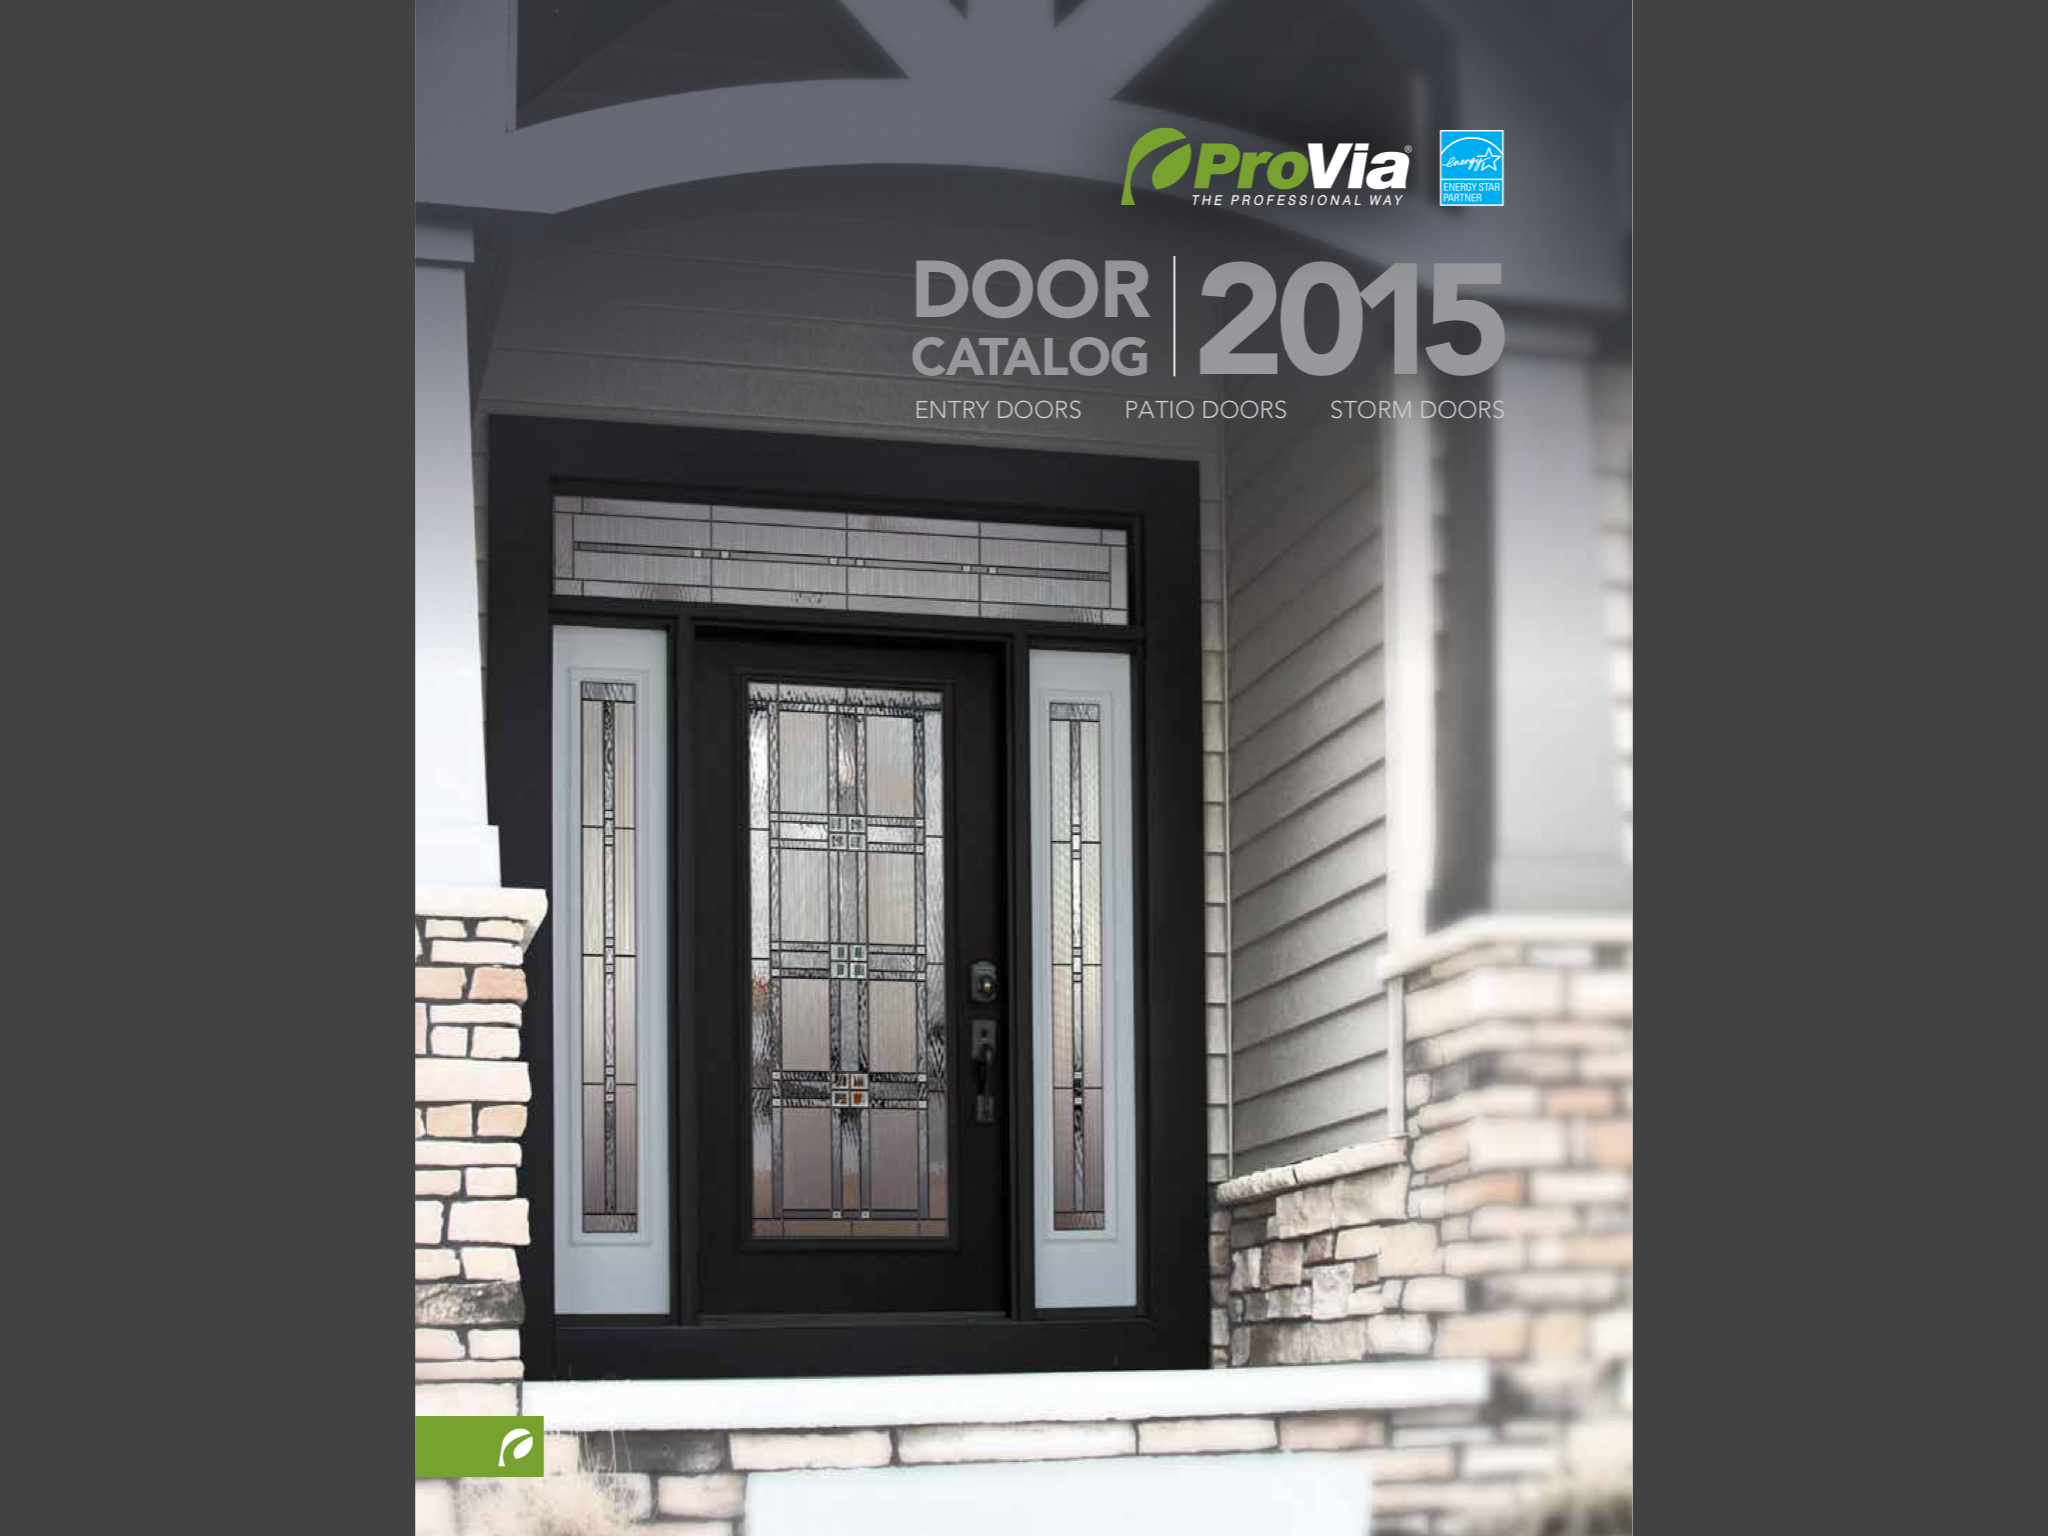 With Provia S New Ipad App You Can View Product Brochures Photo Galleries And Videos Review Product Energy Performance Vinyl Siding Entry Doors Tool Design